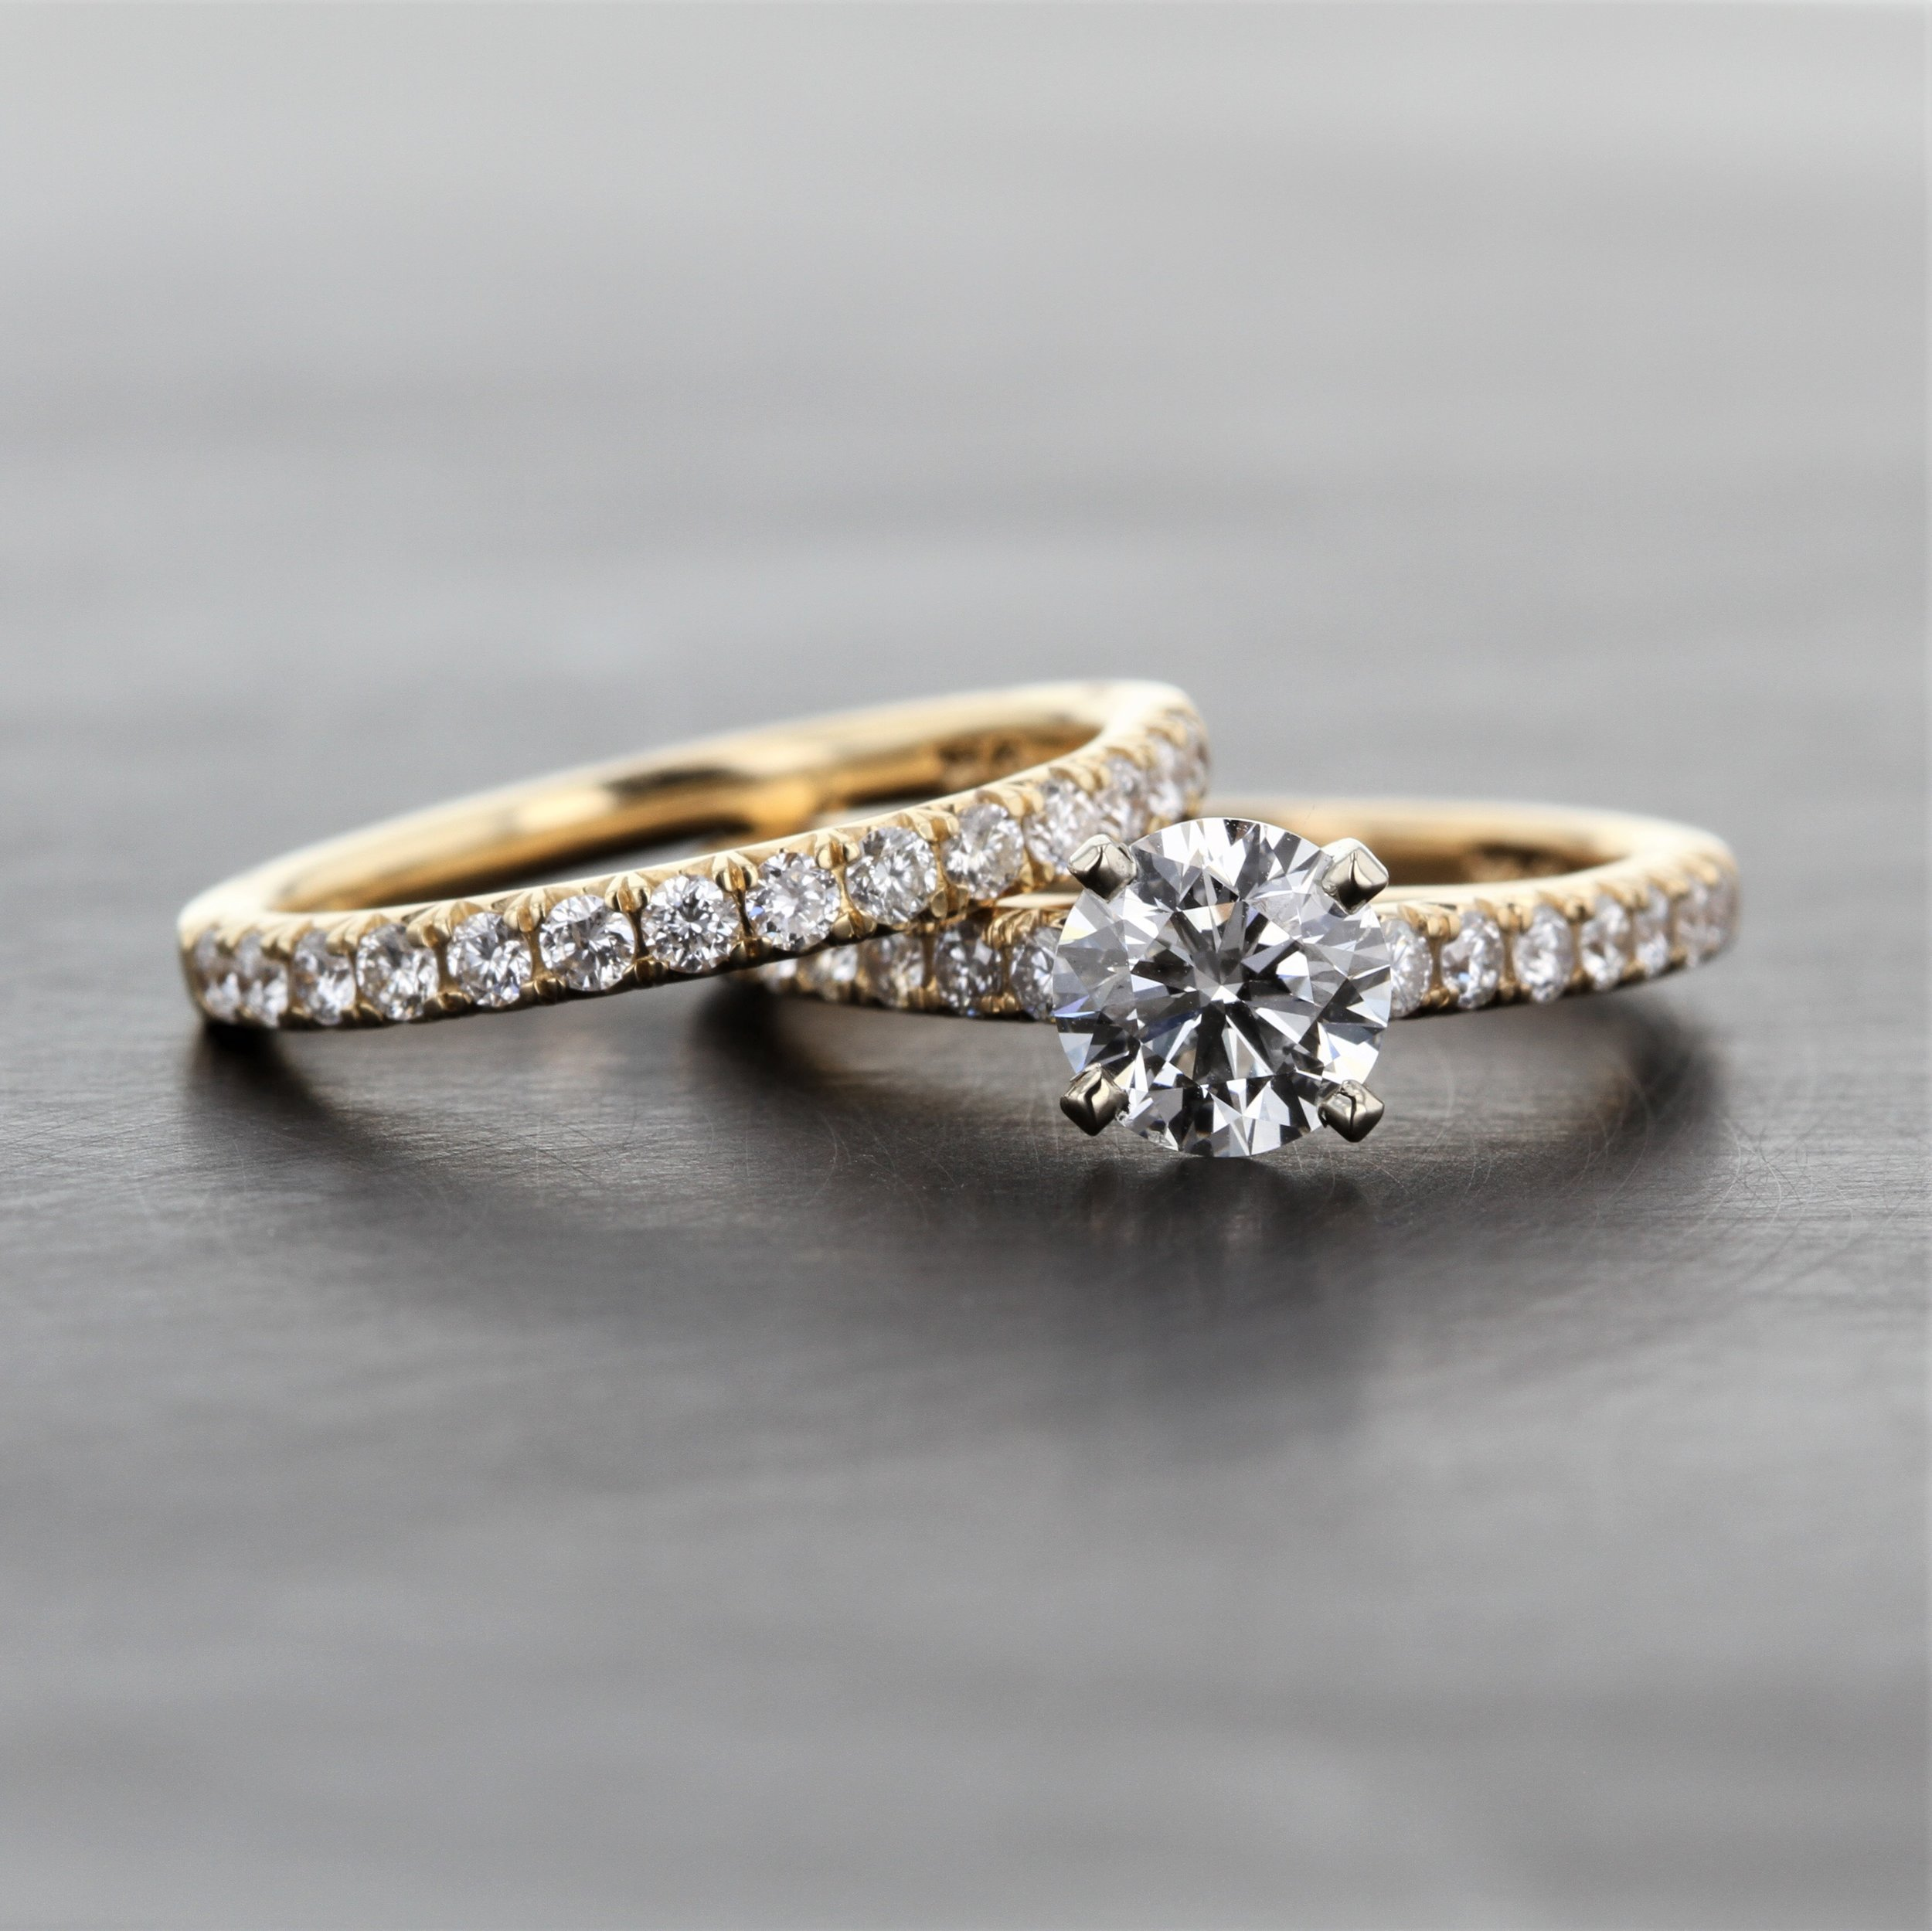 Engagement Ring And Wedding Band.Yellow Gold Diamond Solitaire Engagement Ring Kizer Cummings Jewelers